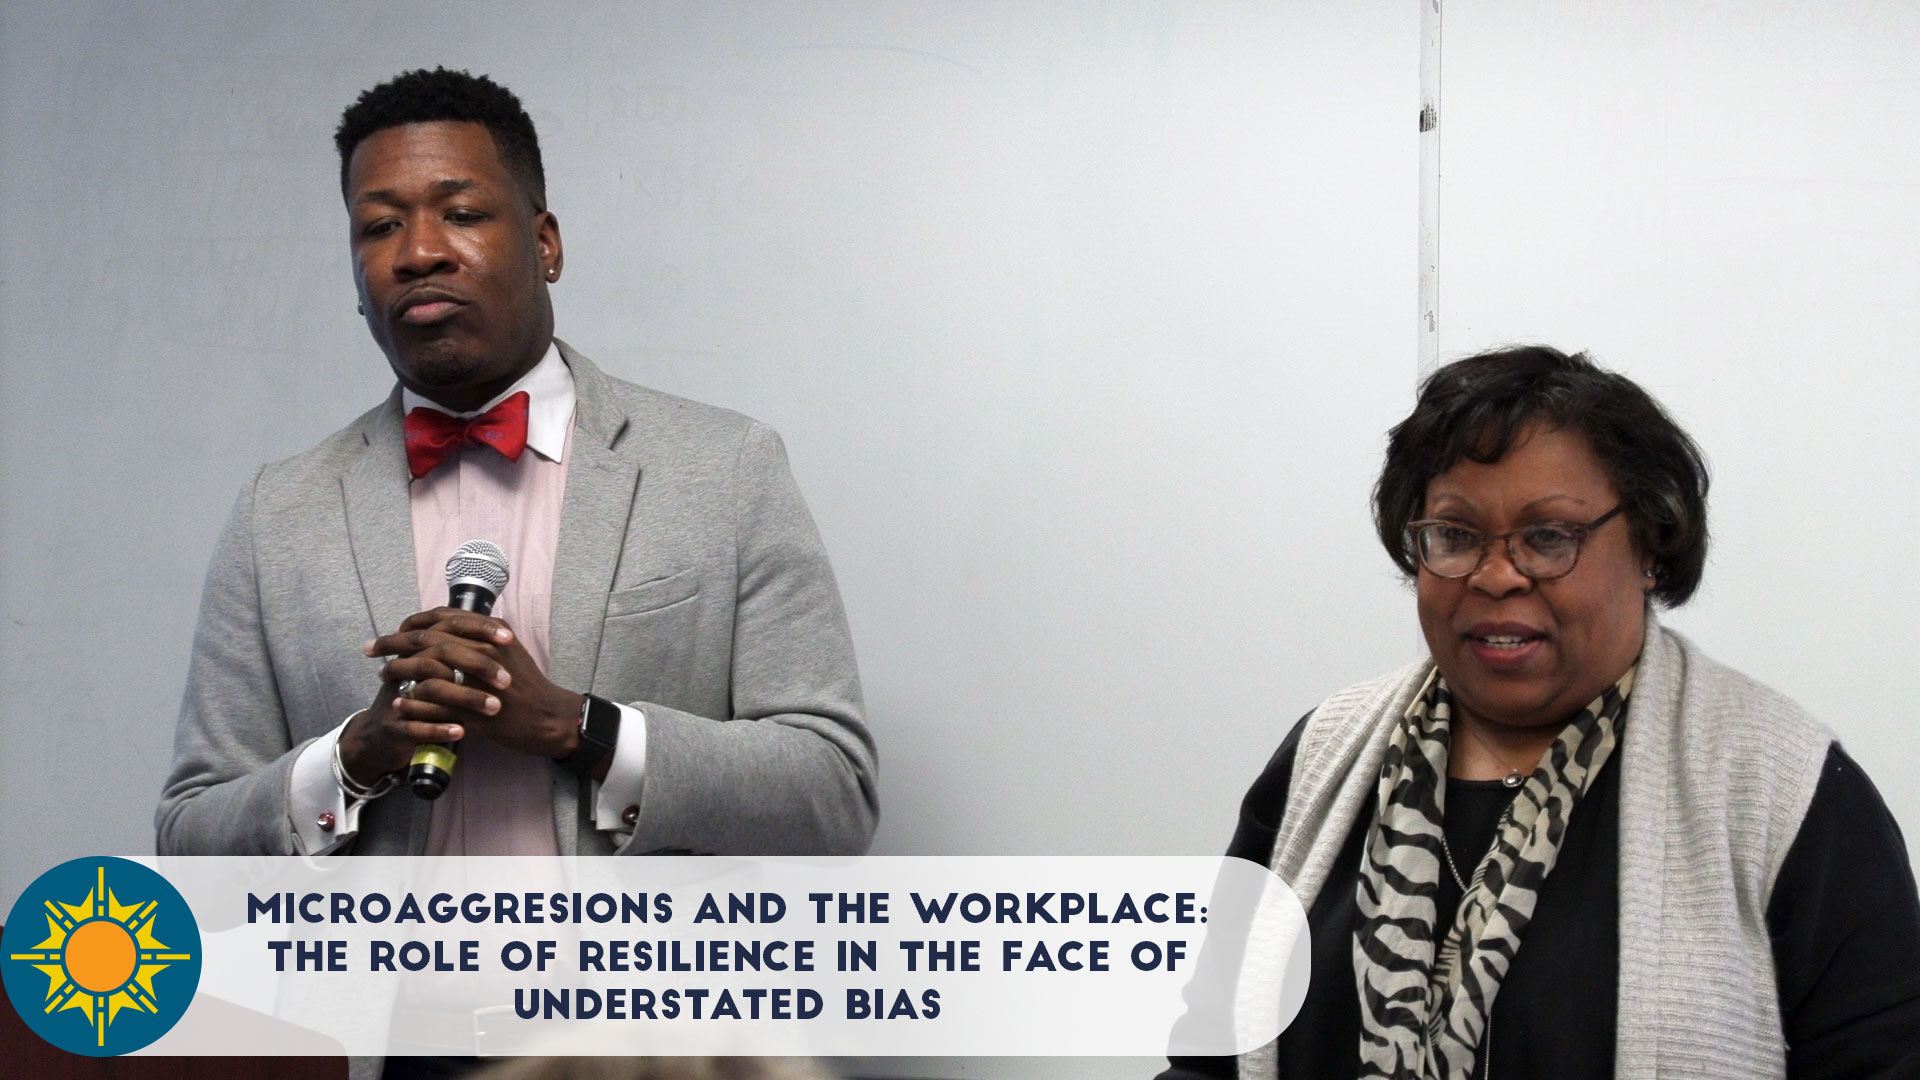 Microaggressions and the Workplace the Role of Resilence in the face of understated bias